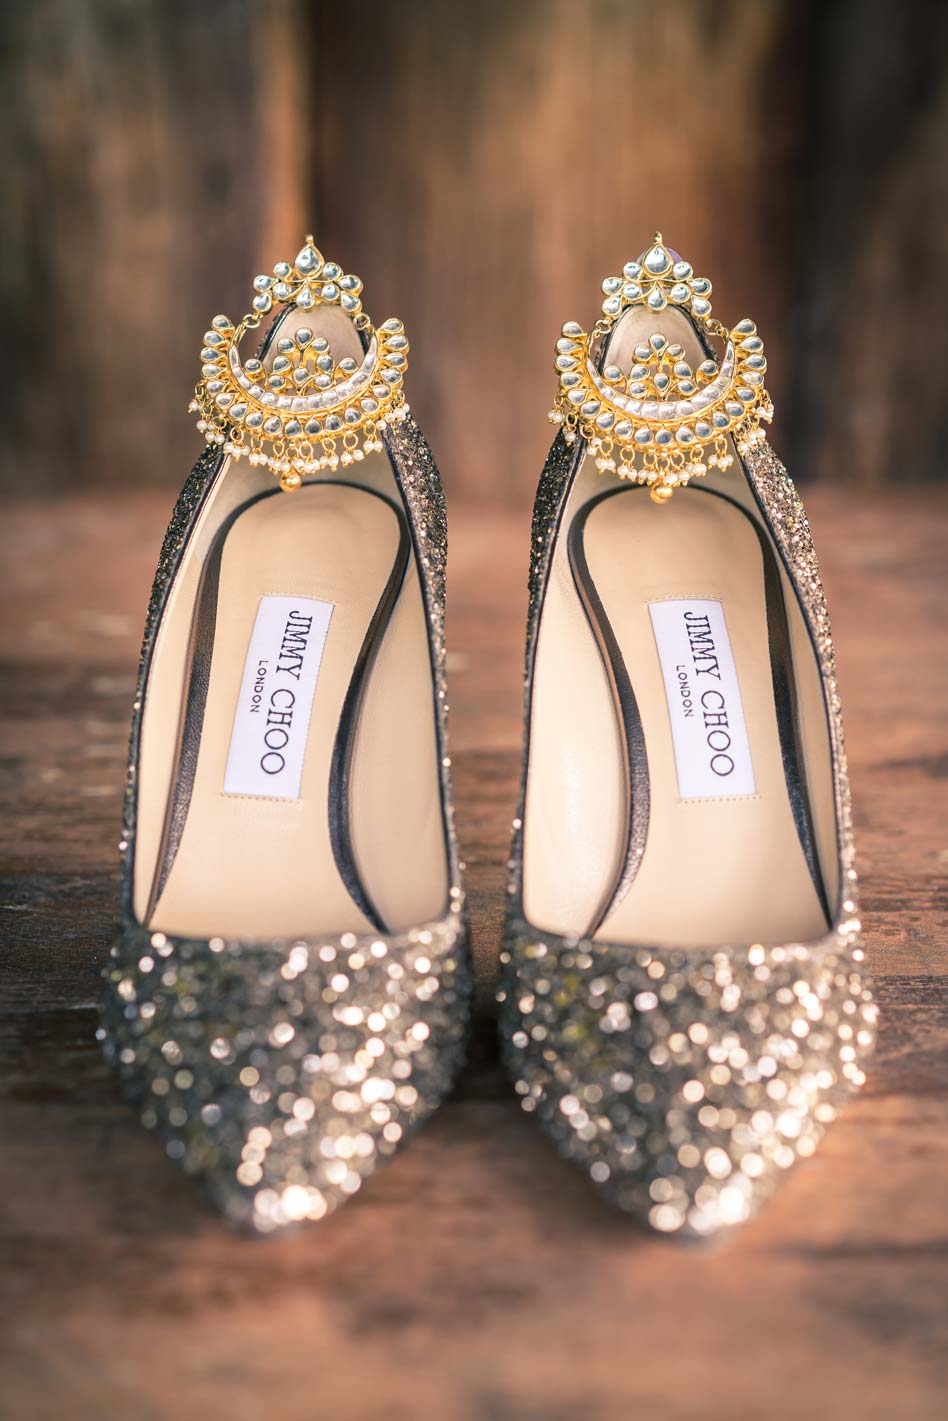 artistic wedding photography showing golden earrings hanging on sparkling Jimmy Choo Cinderella wedding shoes on wooden table at Baxter Barn by Black Avenue Productions